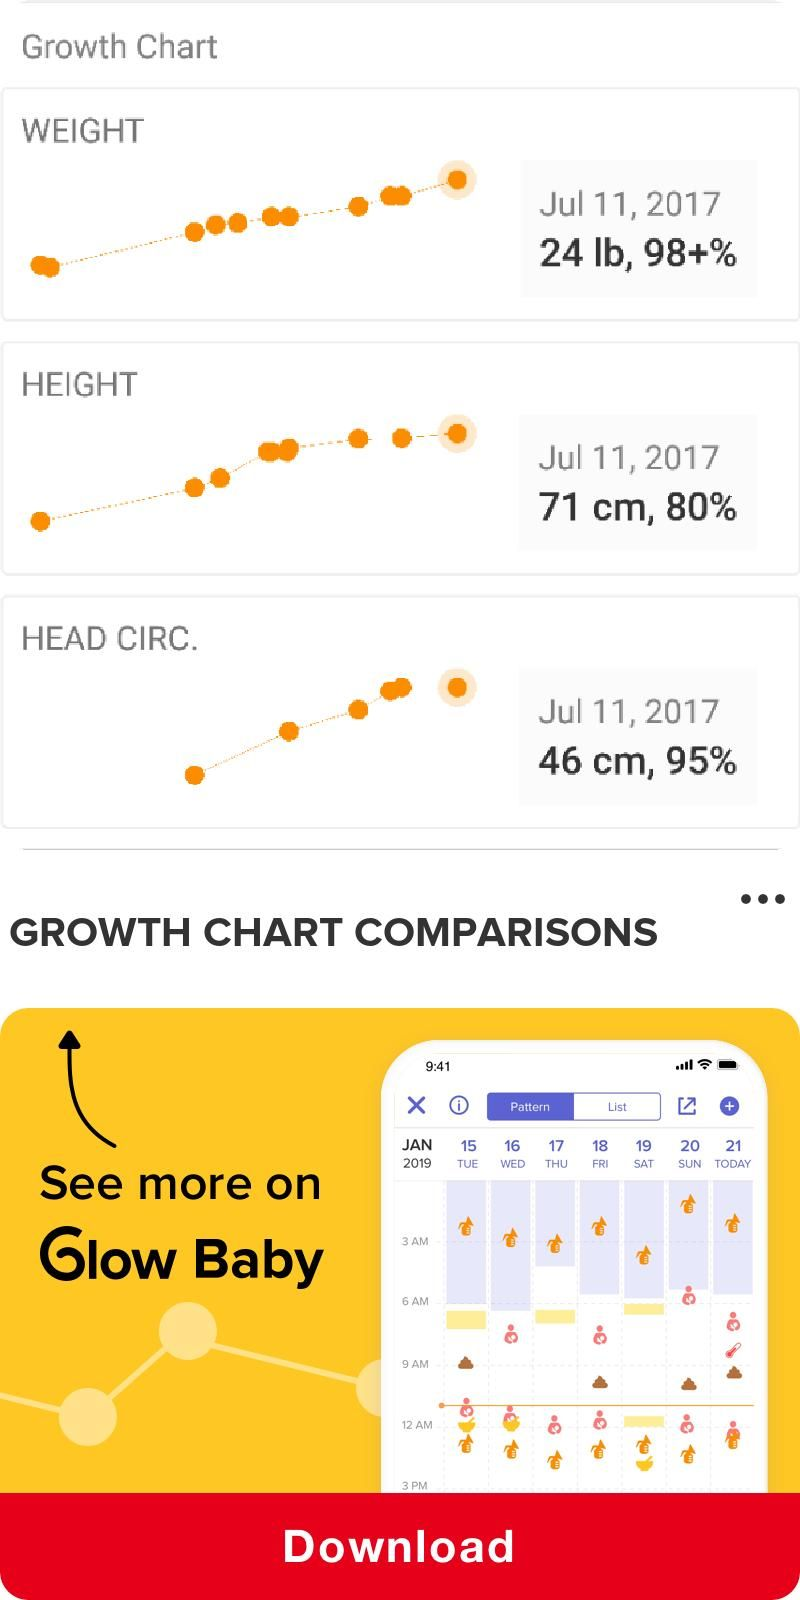 Growth Chart Comparisons Hi everyone just for fun